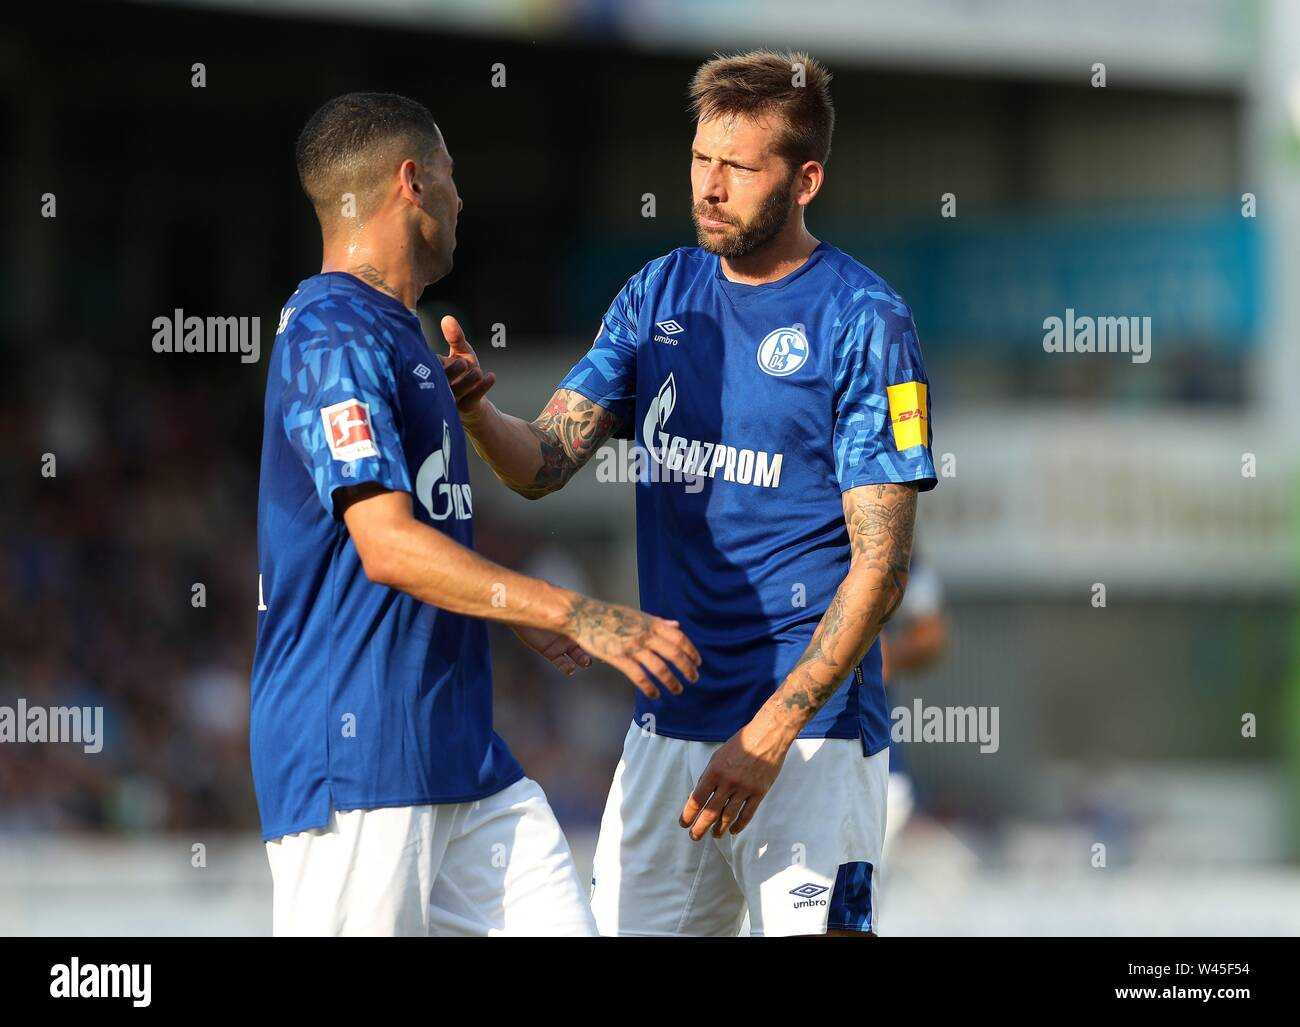 Lotte, Deutschland. 19th July, 2019. firo: 19.07.2019, football, 1.Bundesliga, season 2019/2020, friendly match, FC Schalke 04 - Norwich City Guido BURGSTALLER, Schalke, right with MASCARELL | usage worldwide Credit: dpa/Alamy Live News - Stock Image